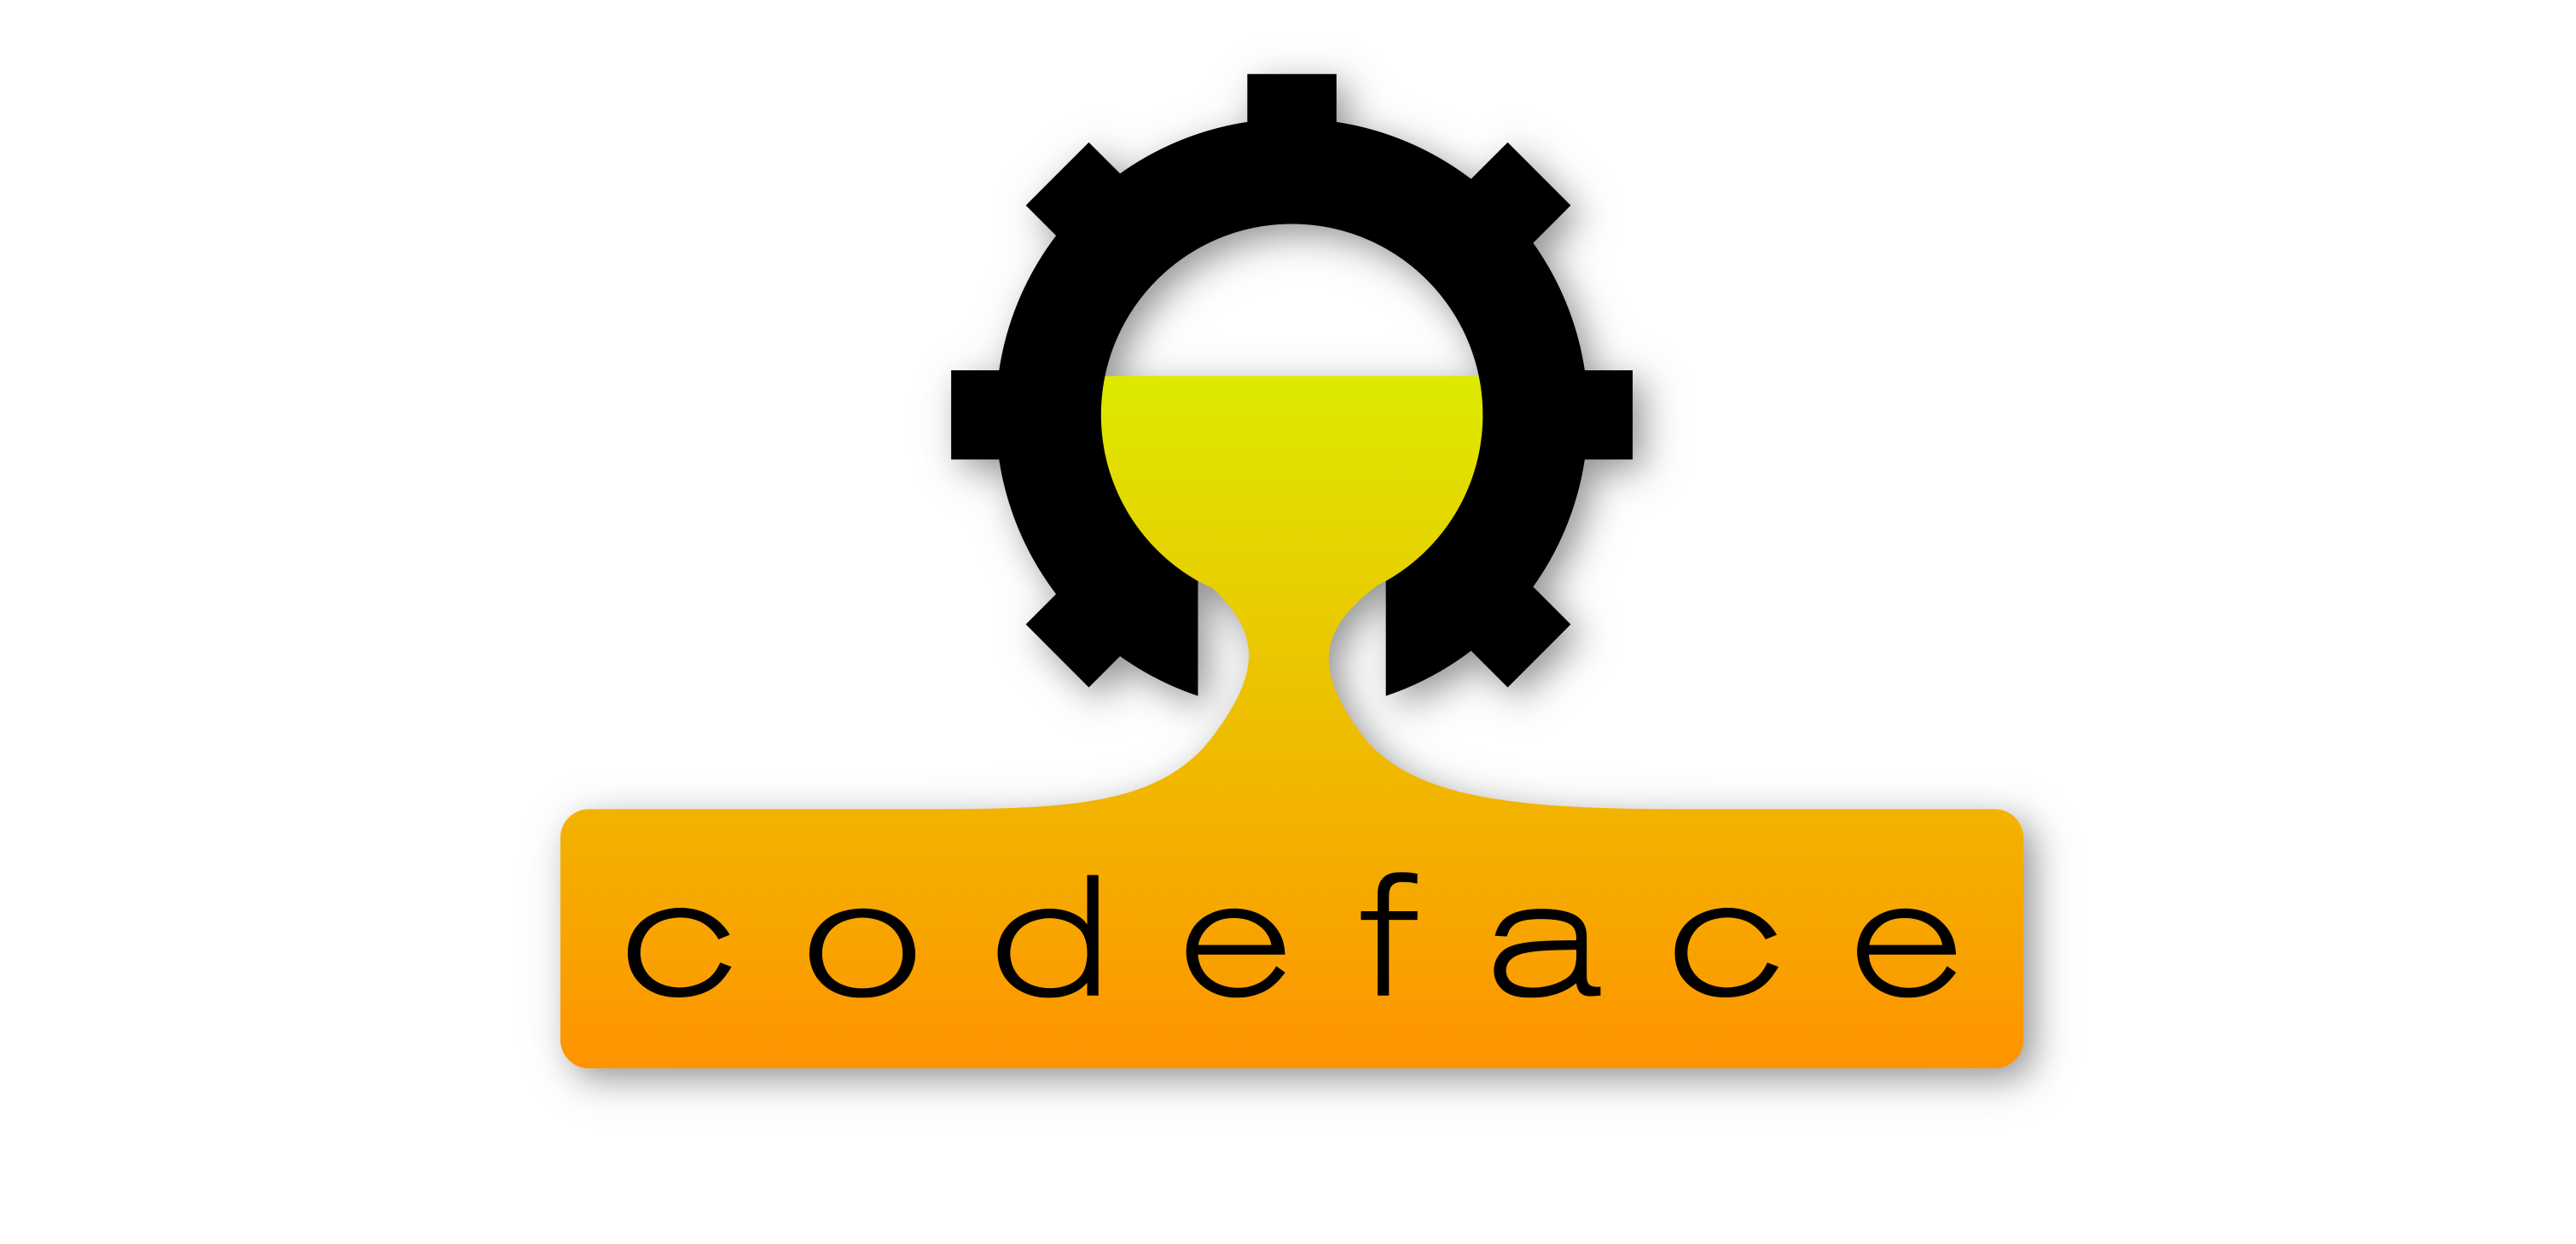 Codeface | Typefaces for source code beautification